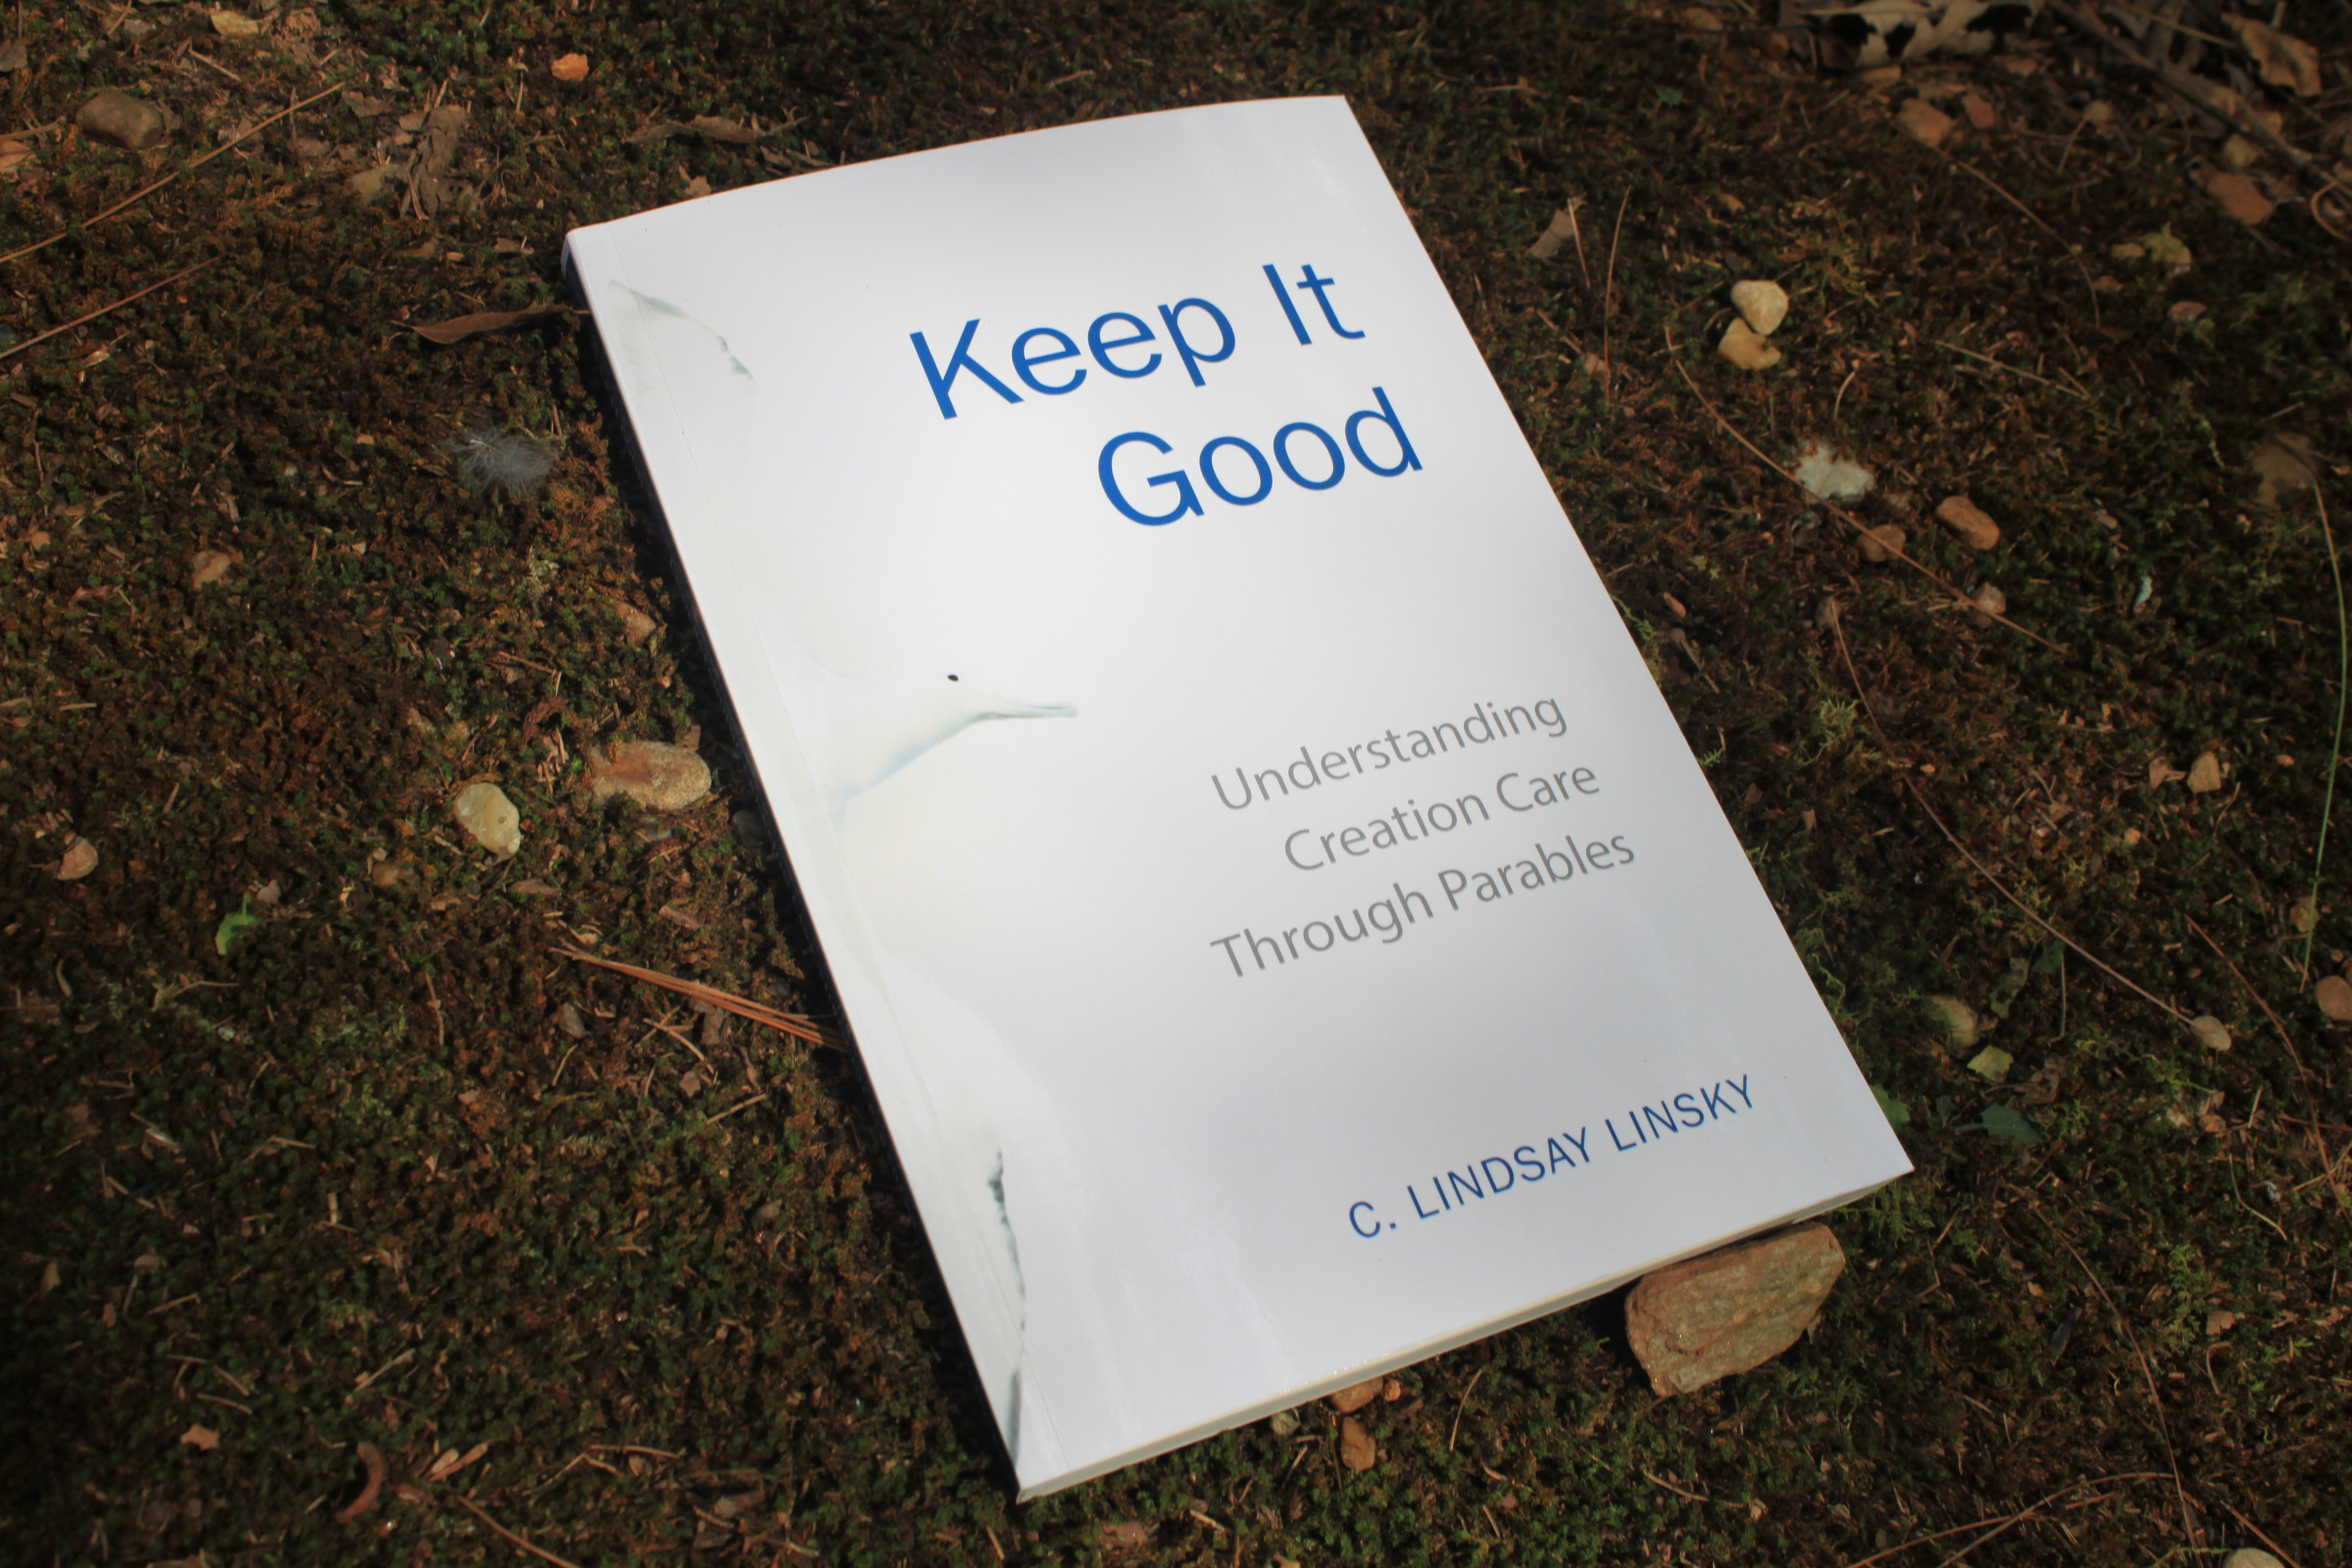 Keep It Good: Understanding Creation Care through Parables